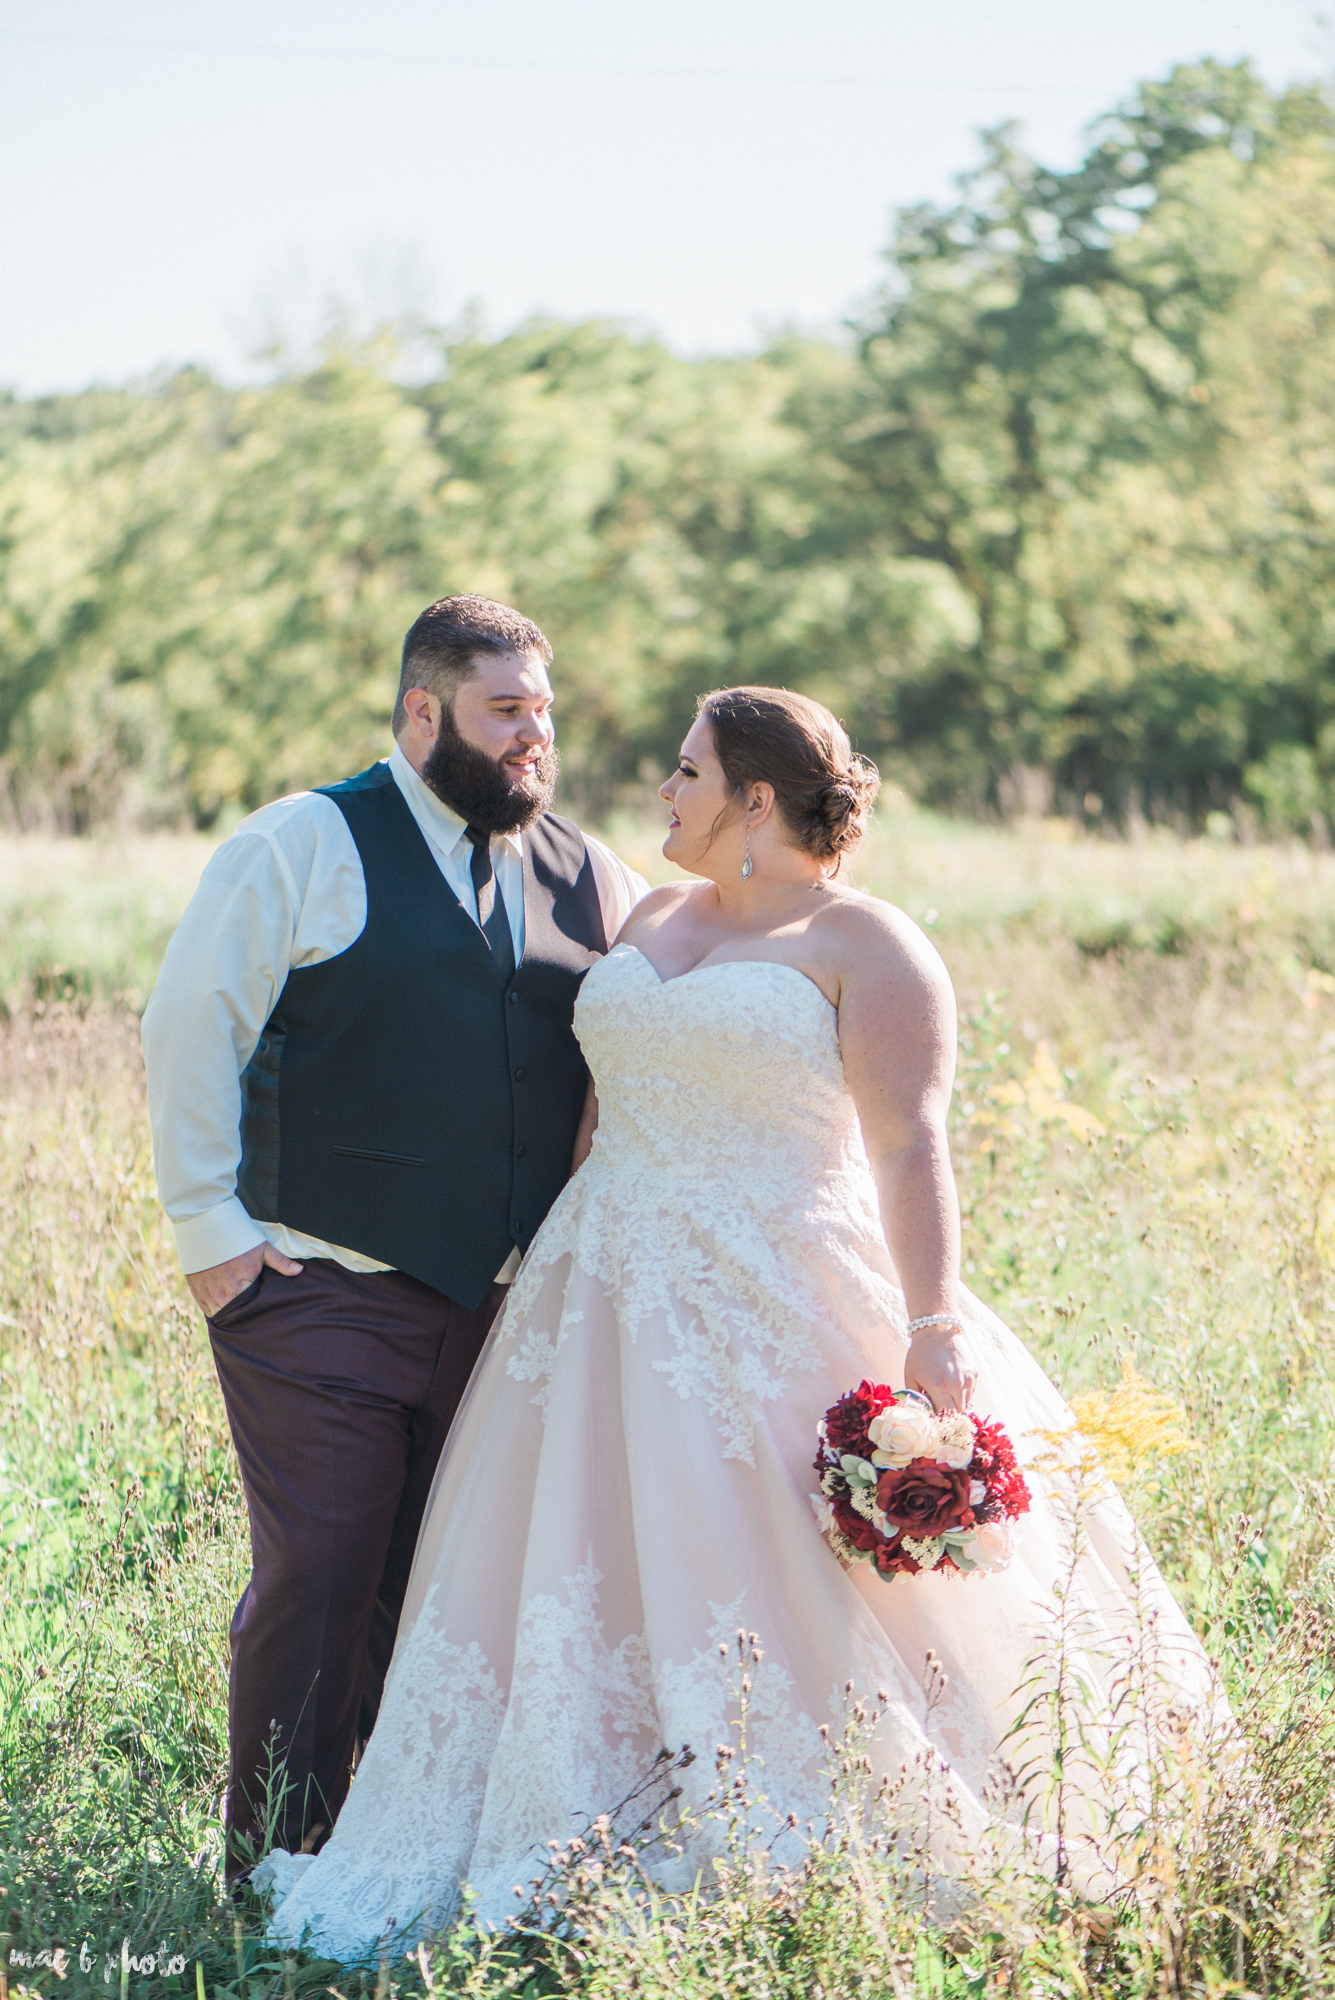 Amber & Kyle's Rustic Barn Wedding at SNPJ in Enon Valley, PA by Mae B Photo-72.jpg